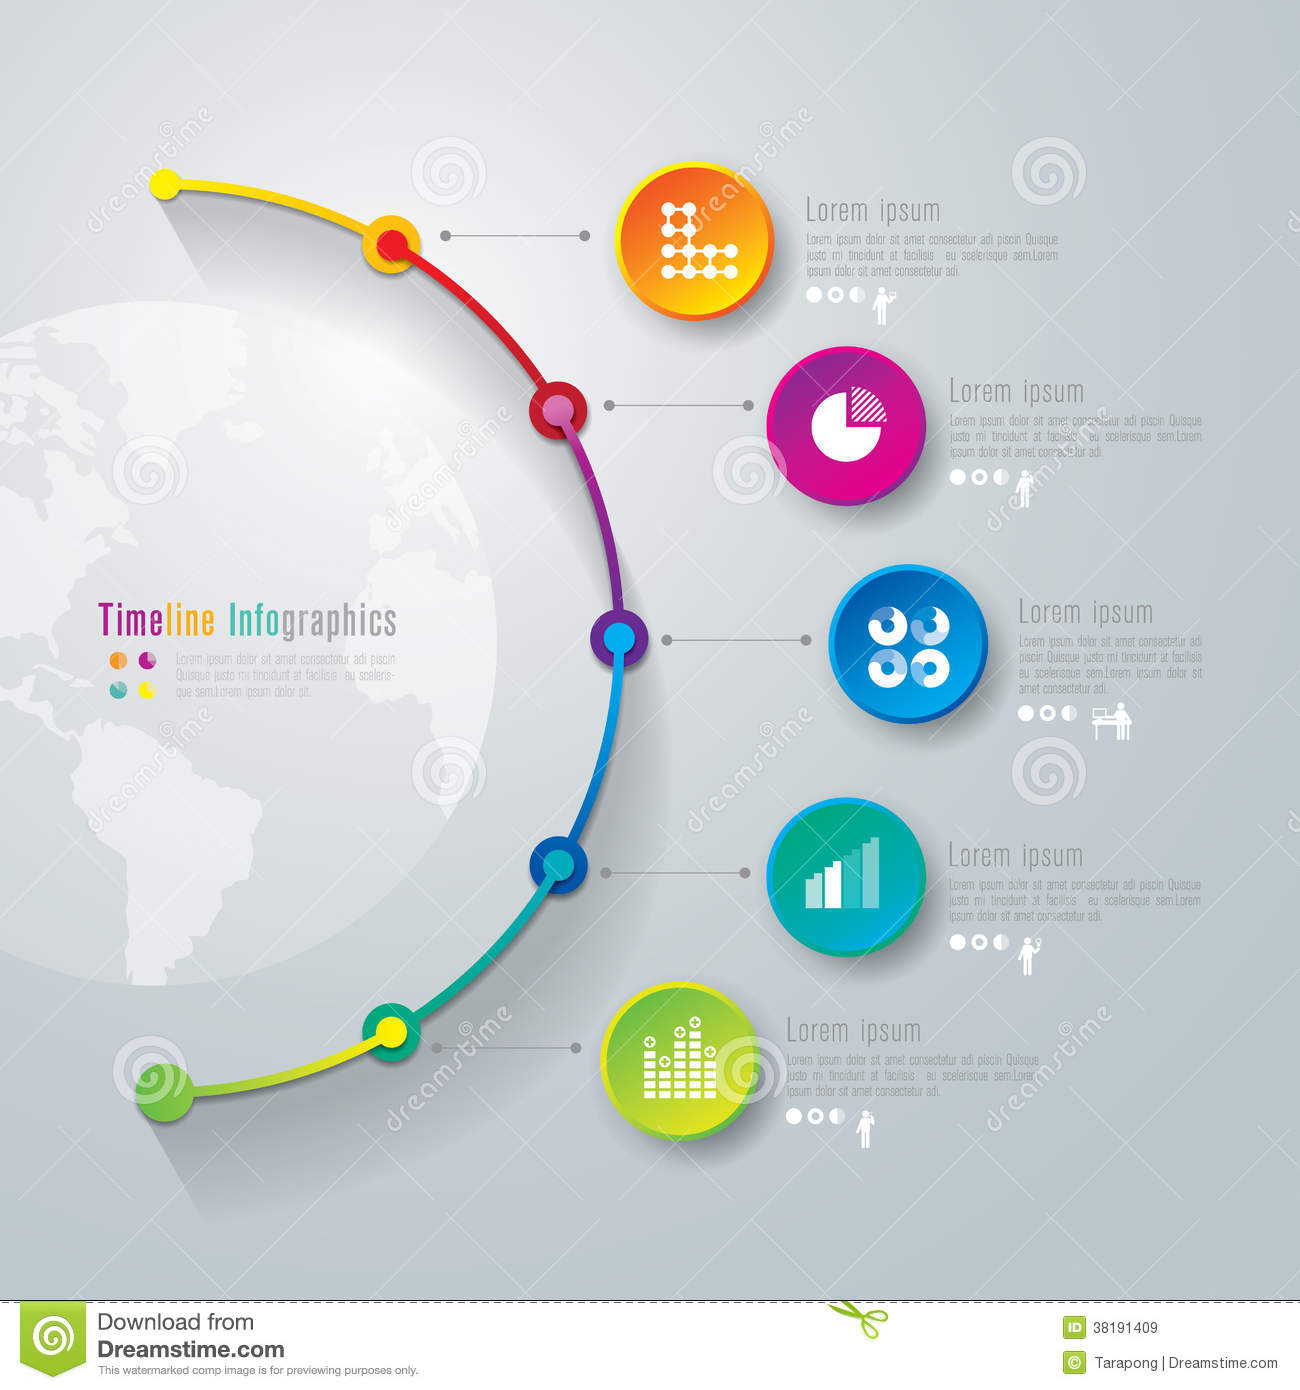 timeline infographics design template. stock vector - illustration